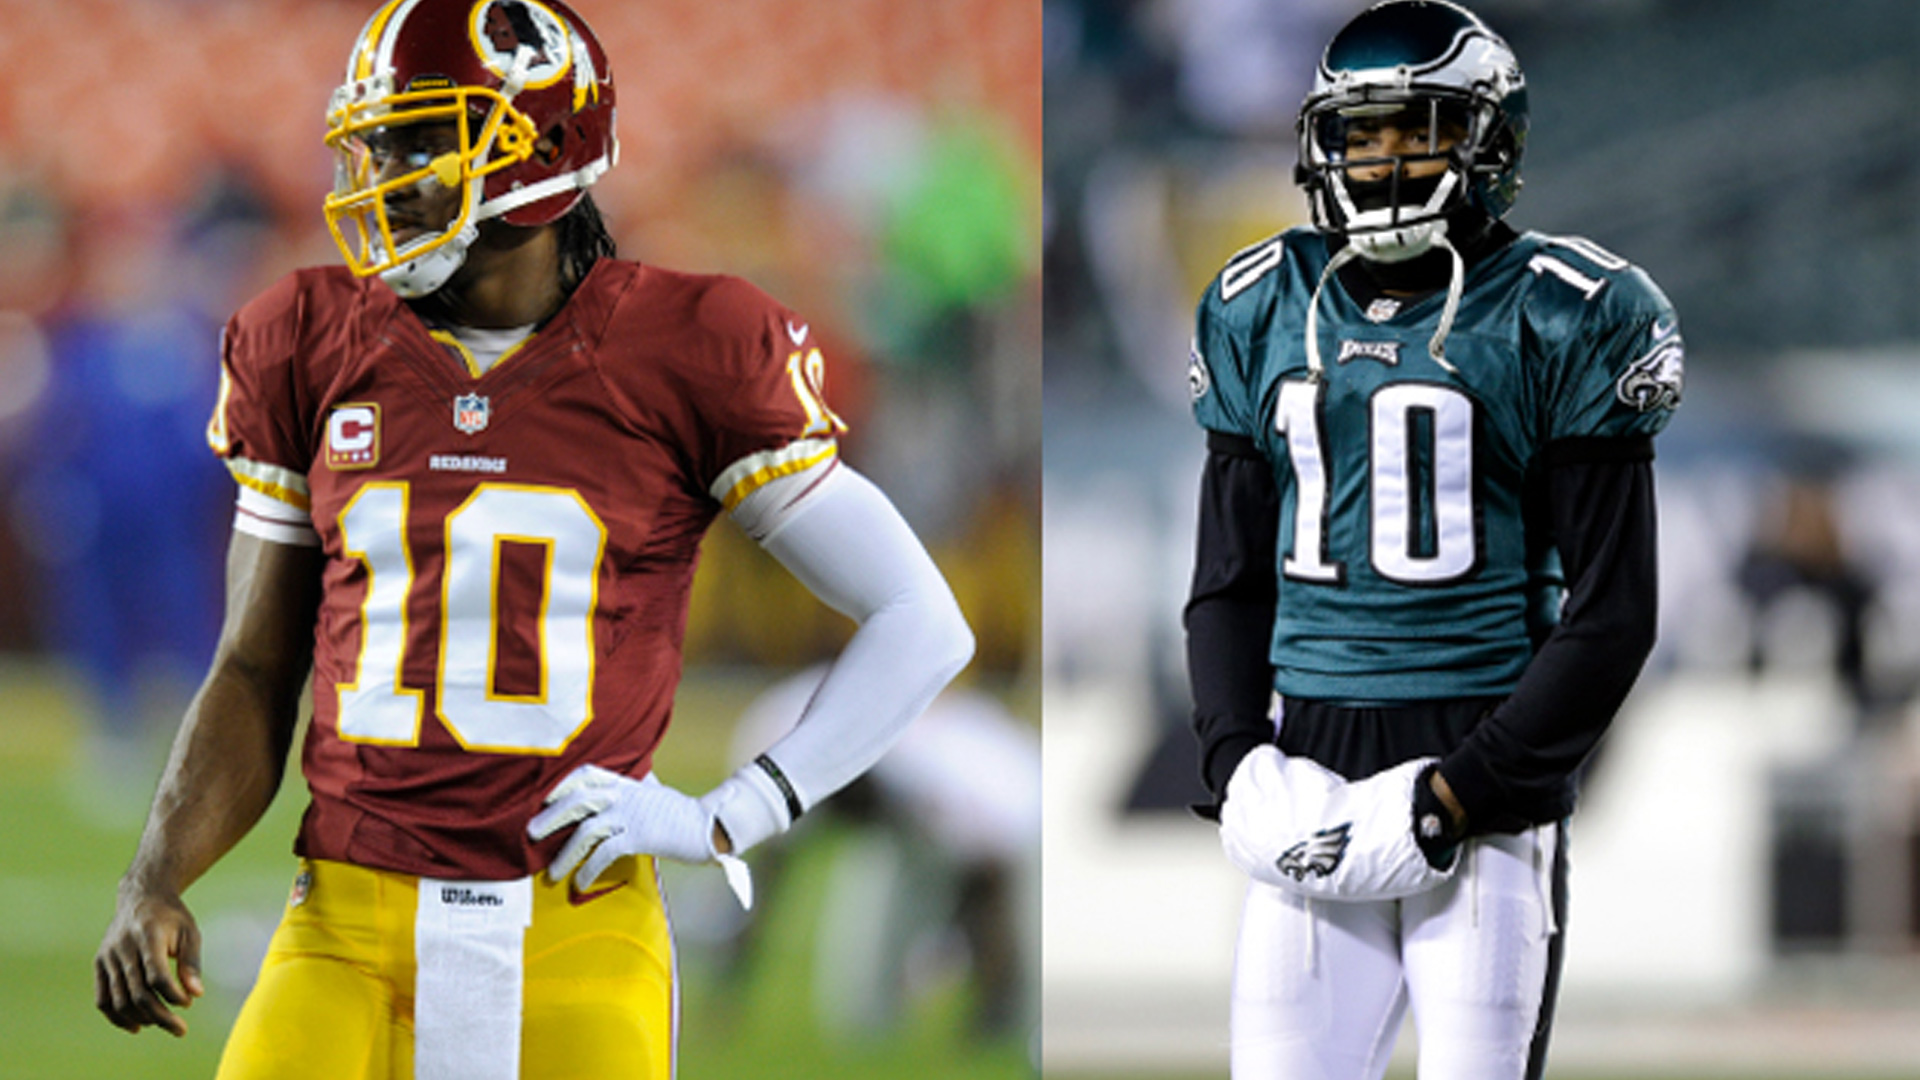 97a9398af02 Robert Griffin III is not giving his No. 10 jersey to DeSean Jackson |  Sporting News